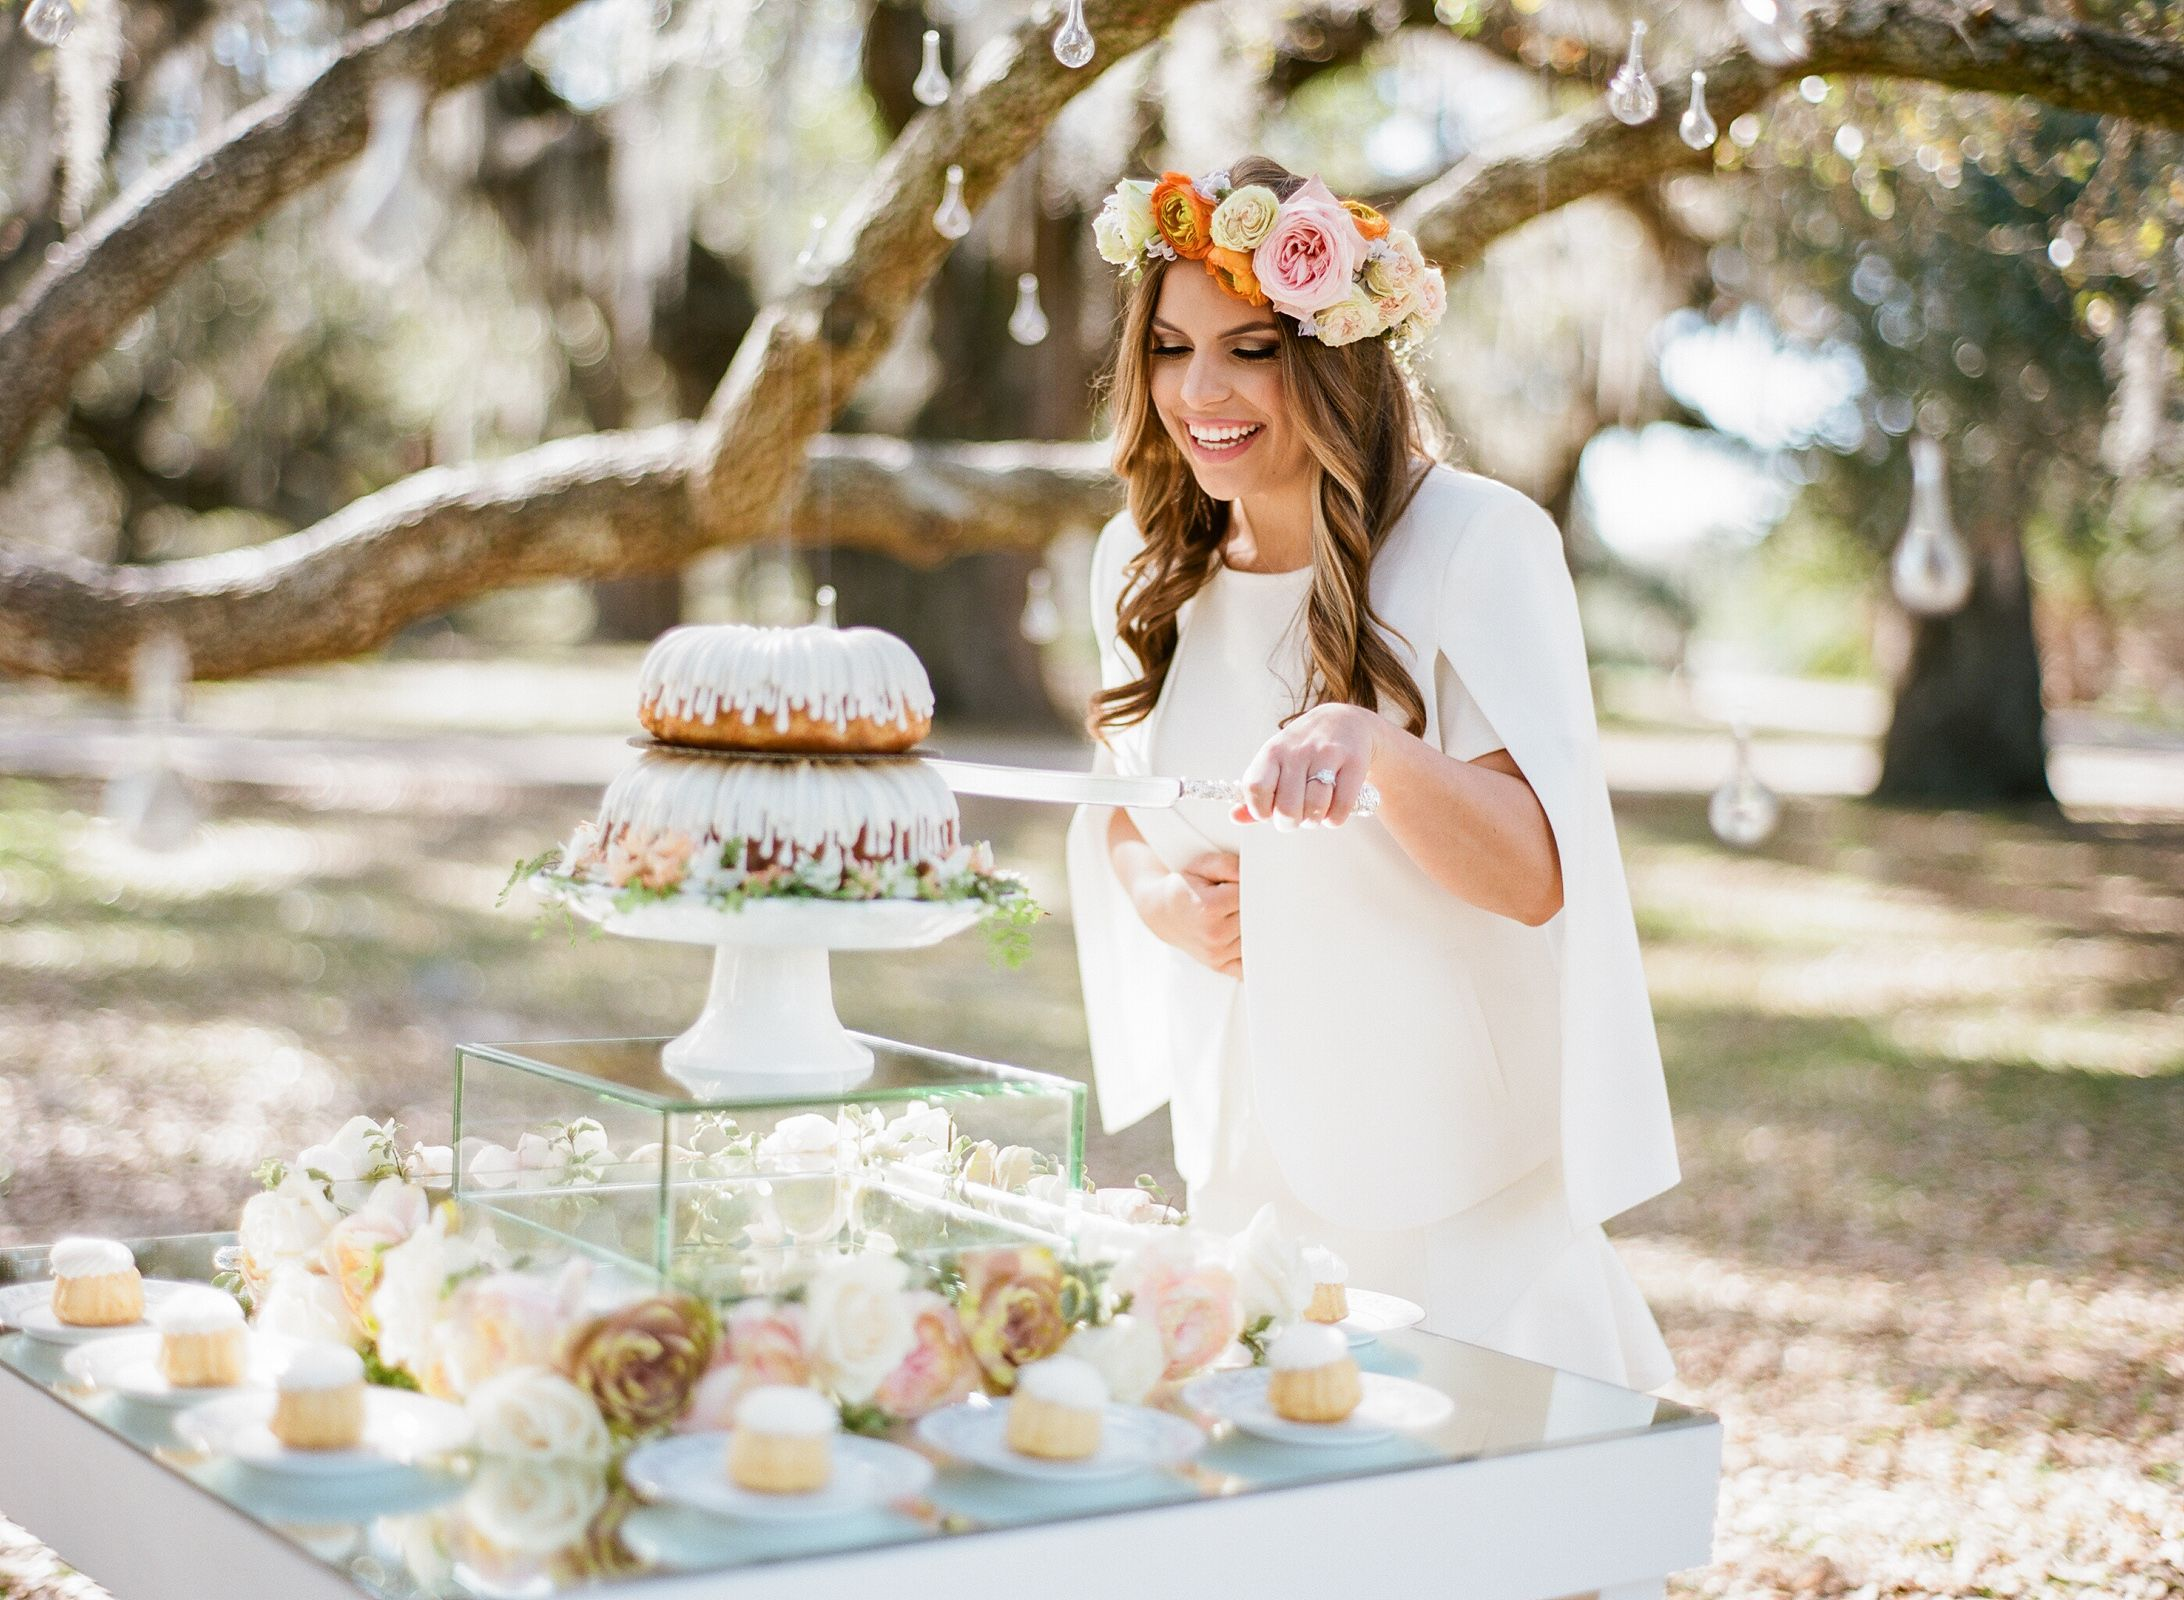 April Showers Bring May Flowers Outdoor Bridal